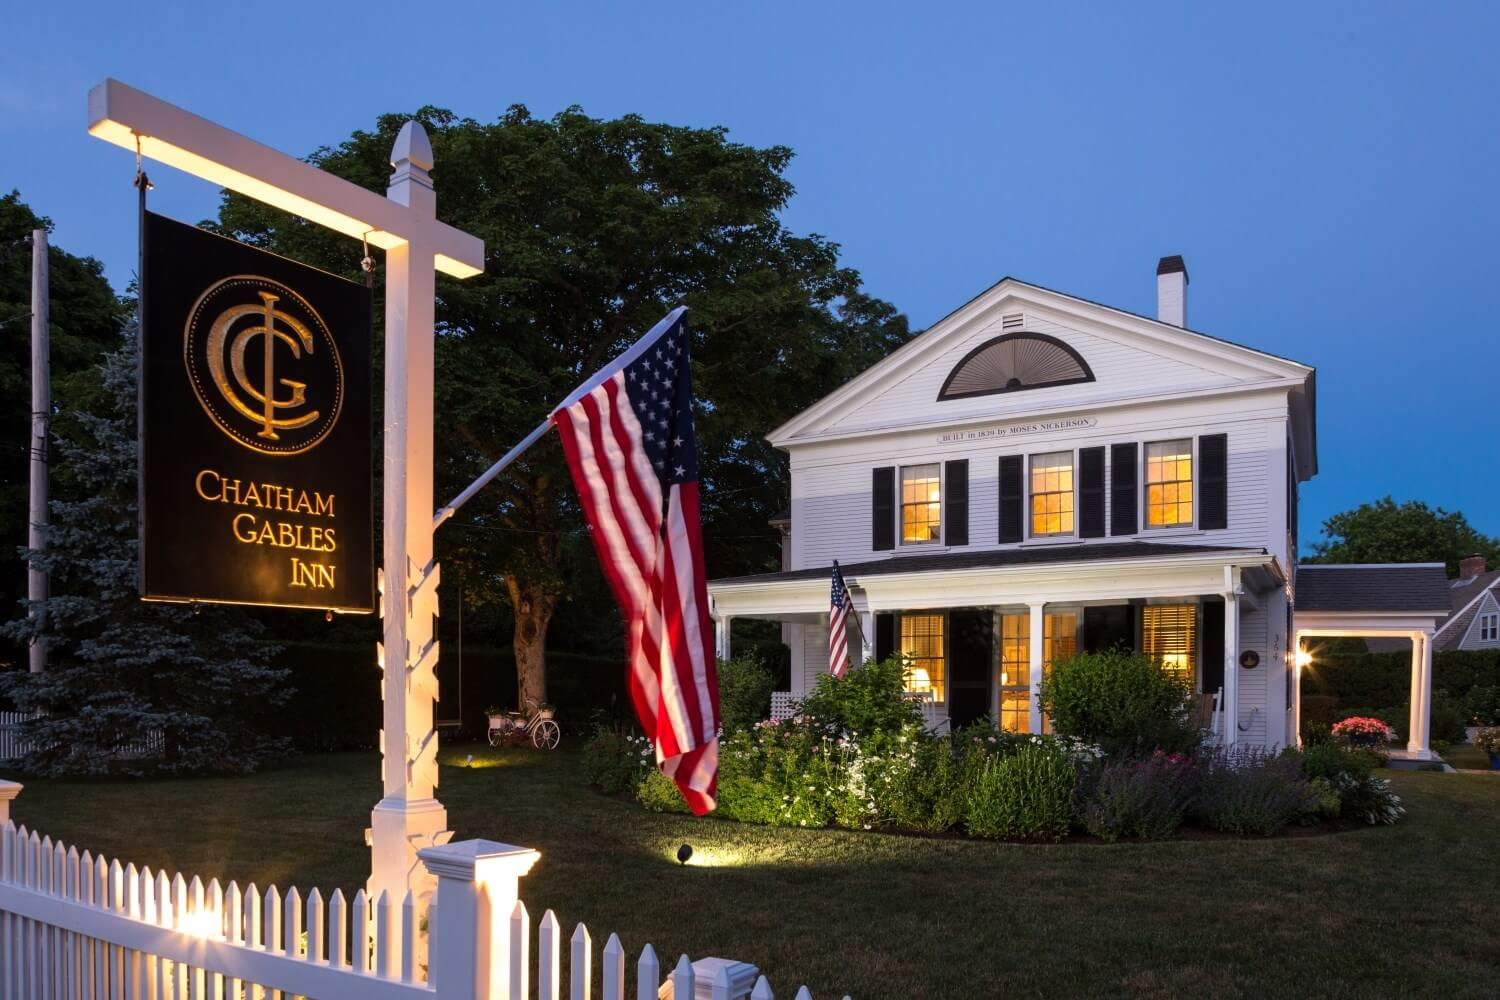 Chatham Gables Inn Exterior at Dusk